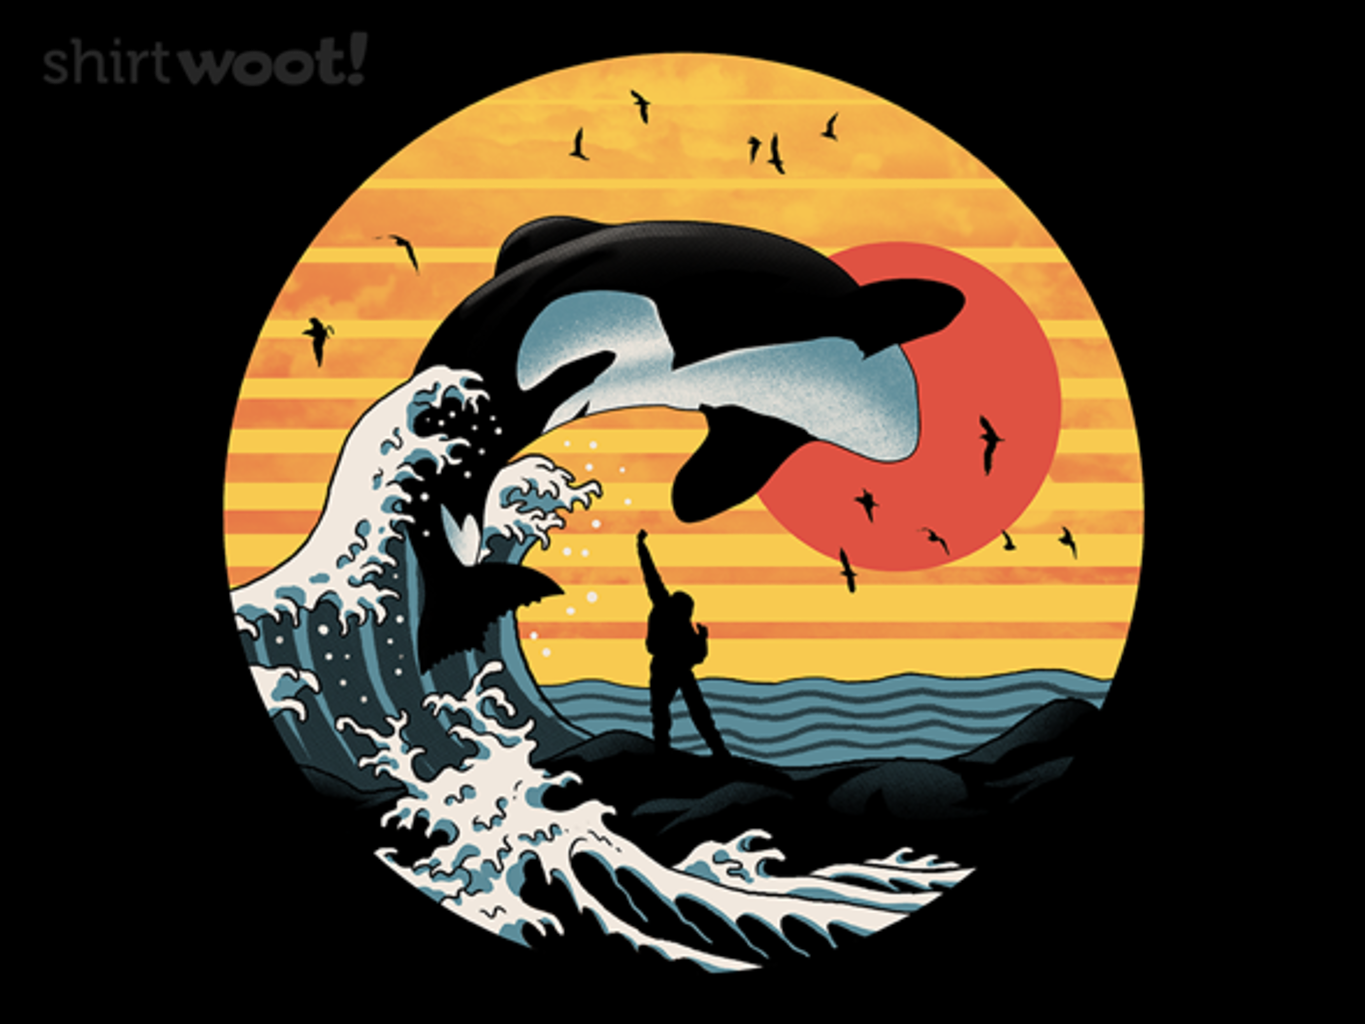 Woot!: The Great Whale